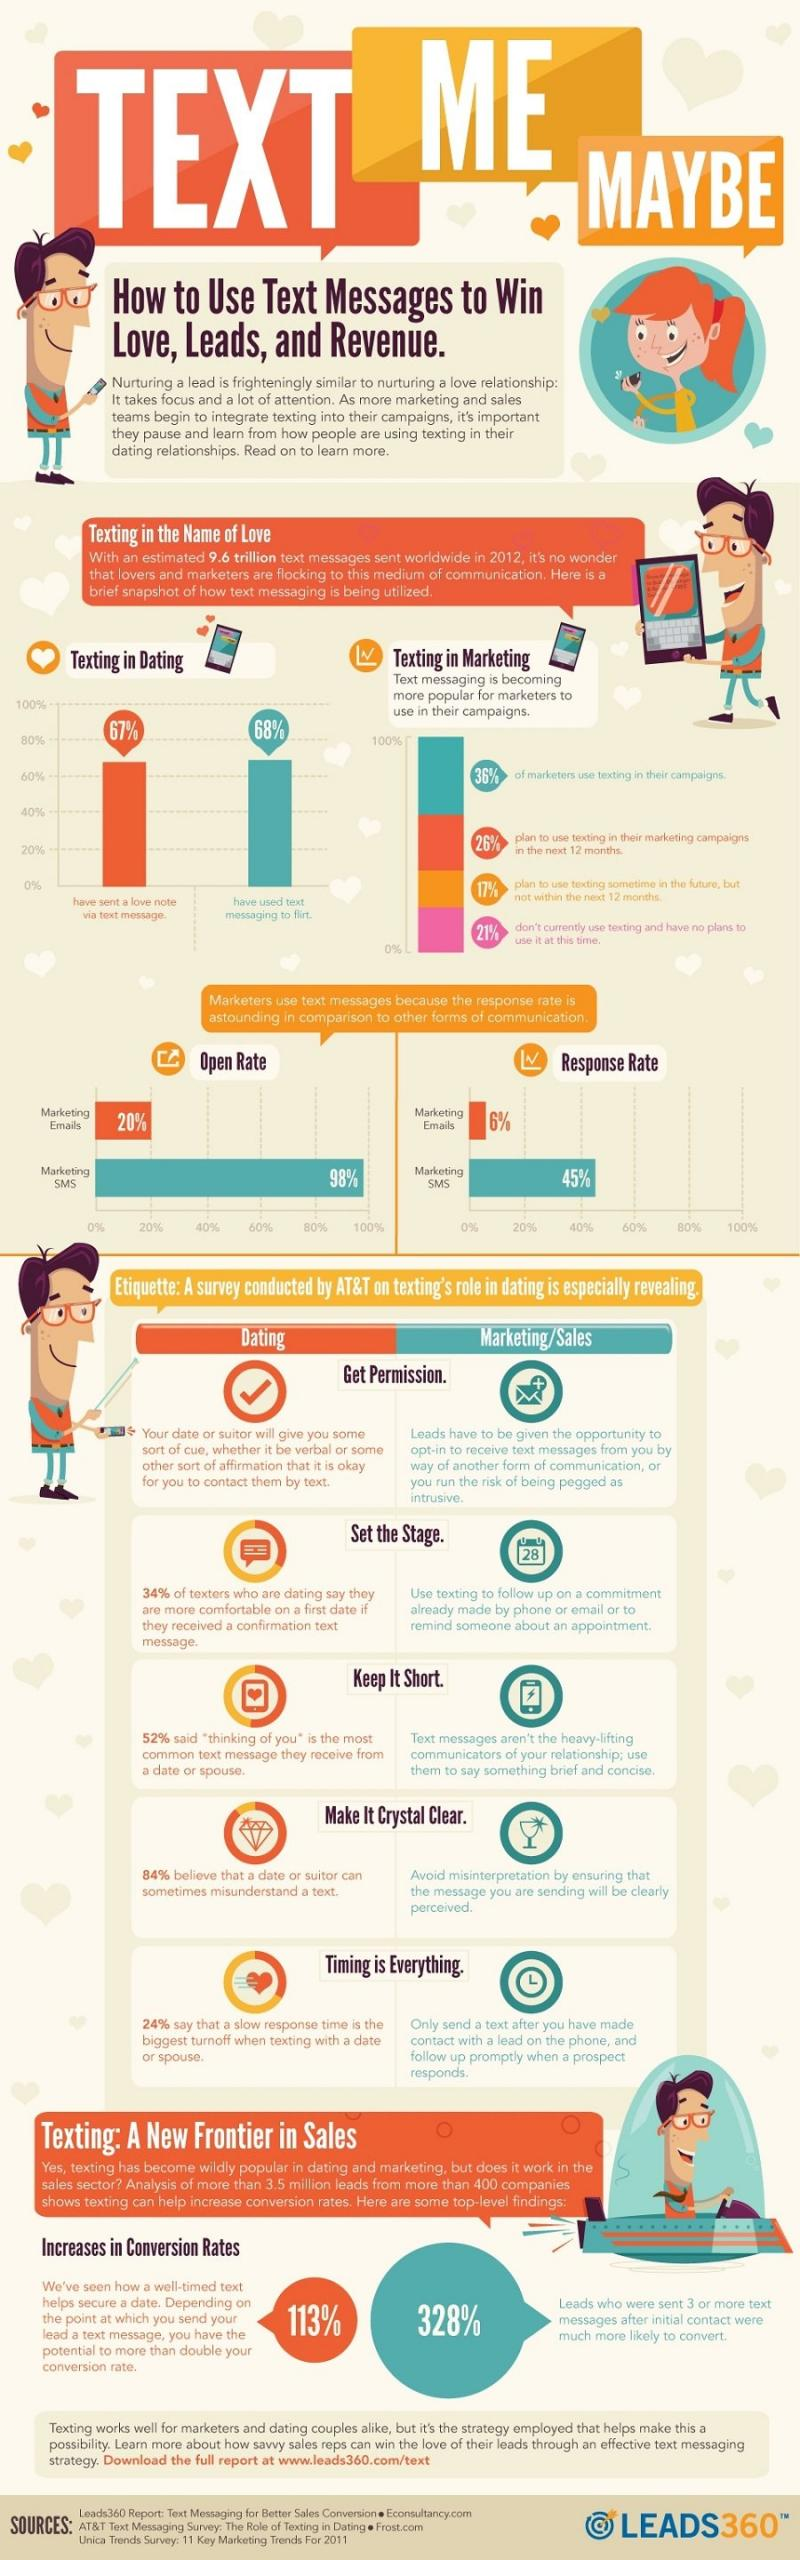 How to use text messages to win love, leads and revenue #infographic